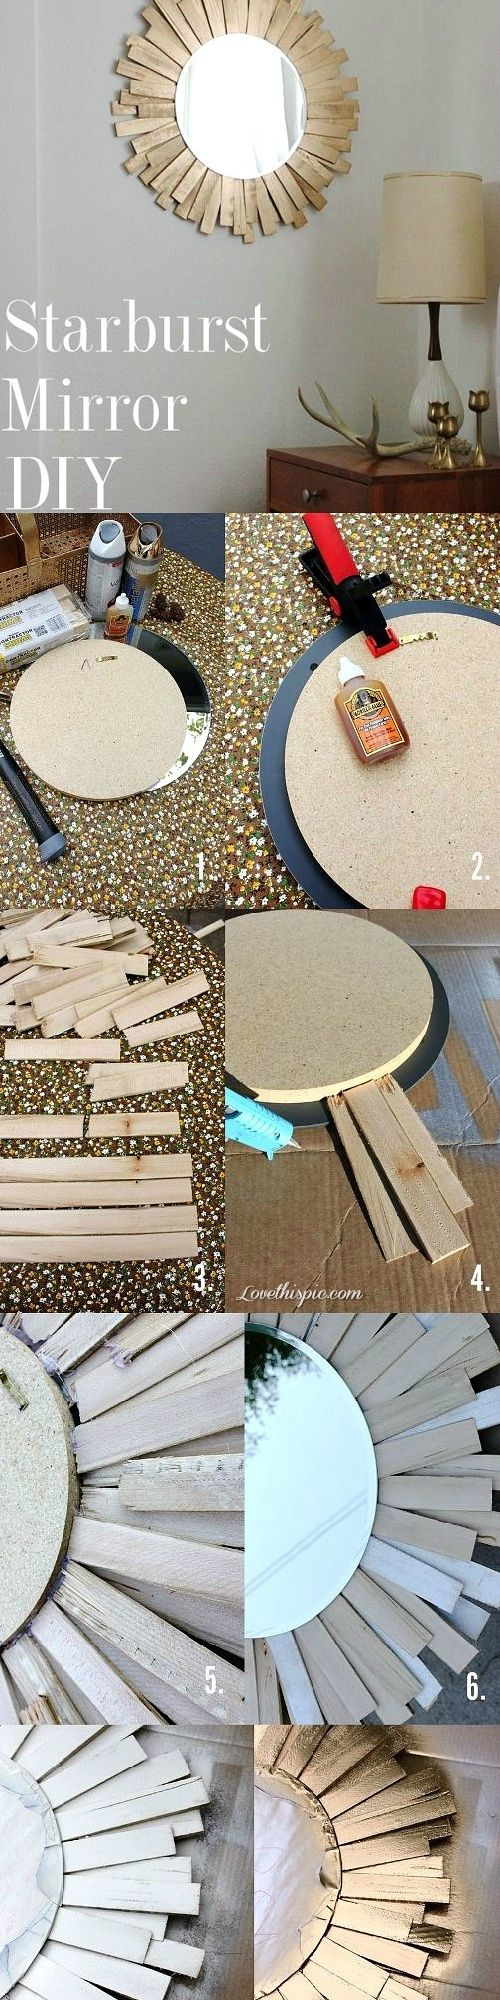 DIY starburst mirror diy decorating ideas crafts instructions diy decor for the home home ideas craft decor craft mirror mirrors